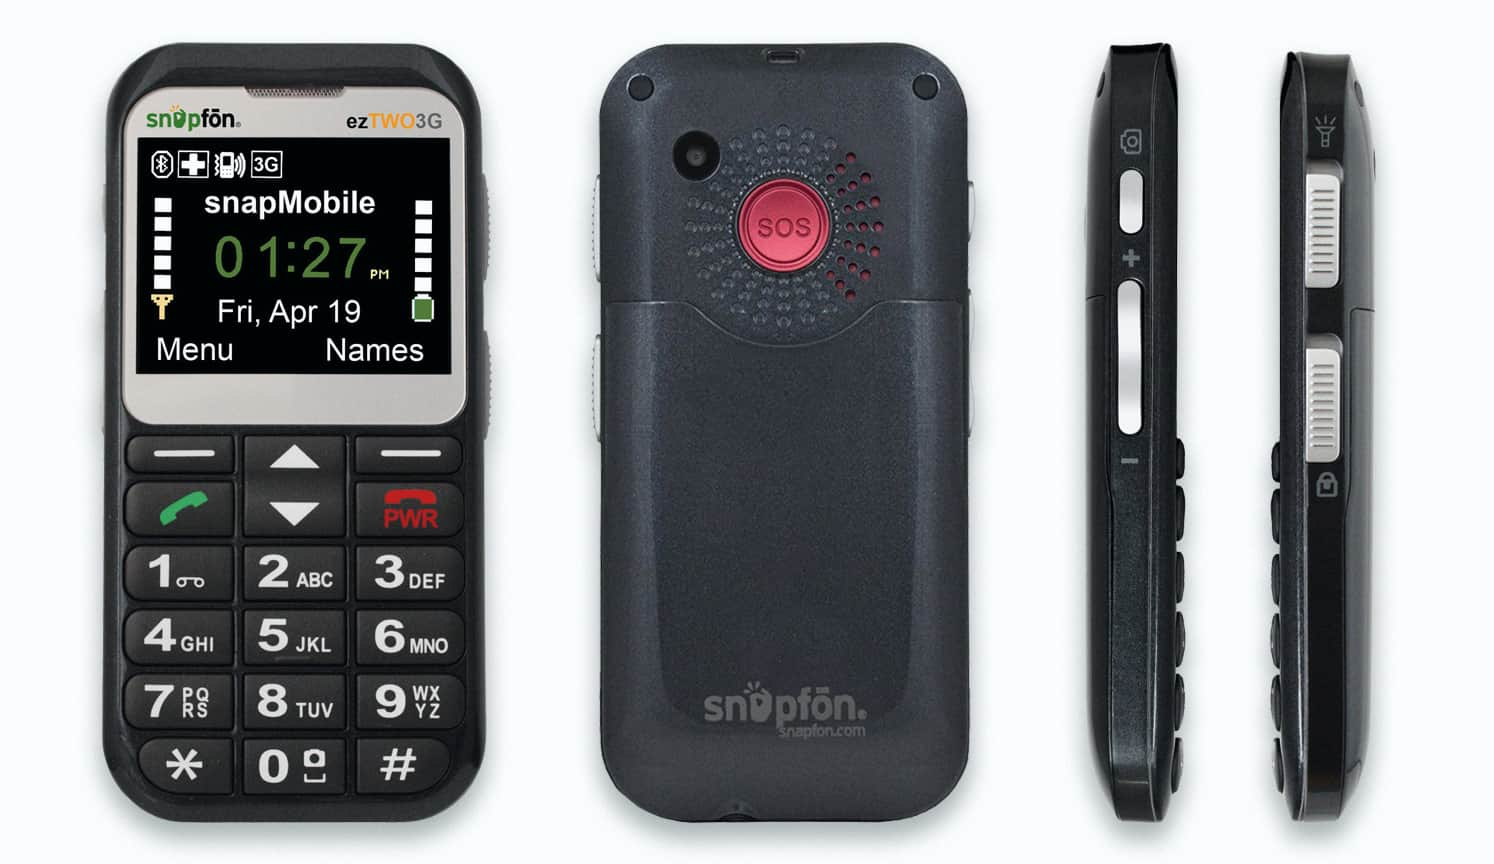 Senior Cell Phone as the third related product of the Best Unlocked Cell Phones